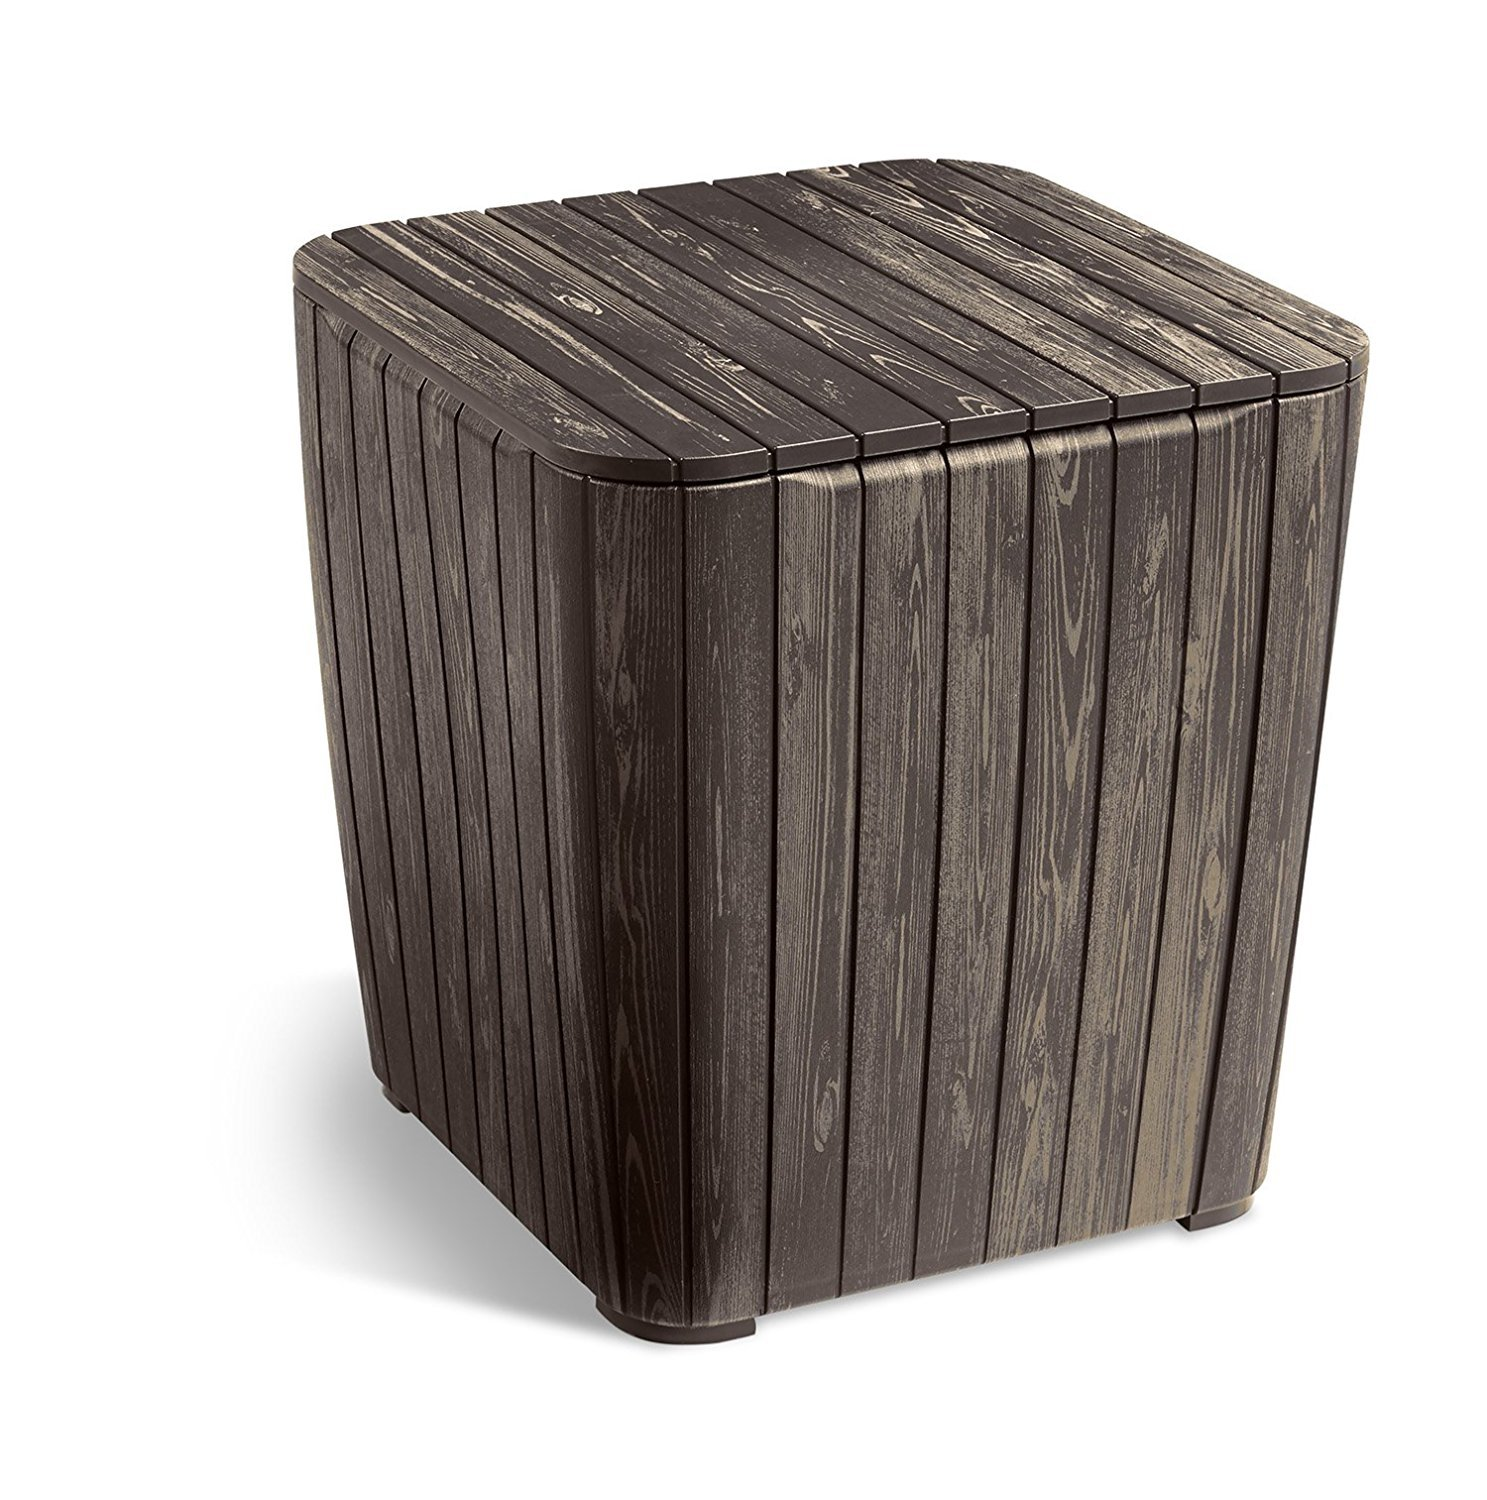 Keter Luzon Patio Side Coffee Table Outdoor Furniture Durable Resin Plastic  Realistic Wood Look, Brown